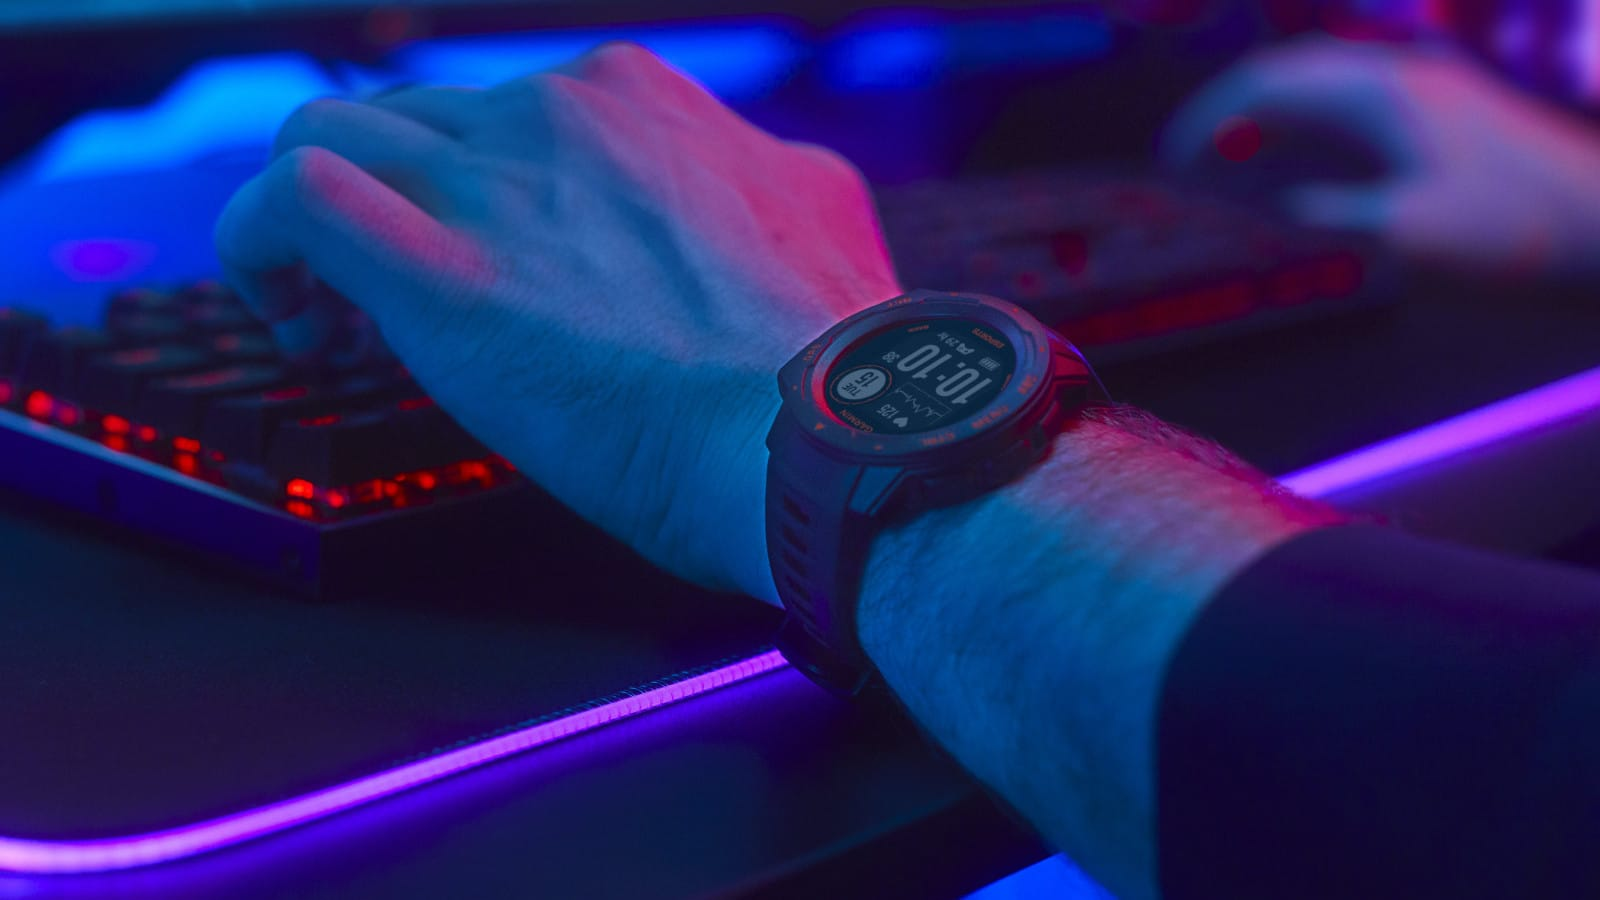 Garmin Instinct Esports Edition gaming smartwatch lasts for up to 14 days